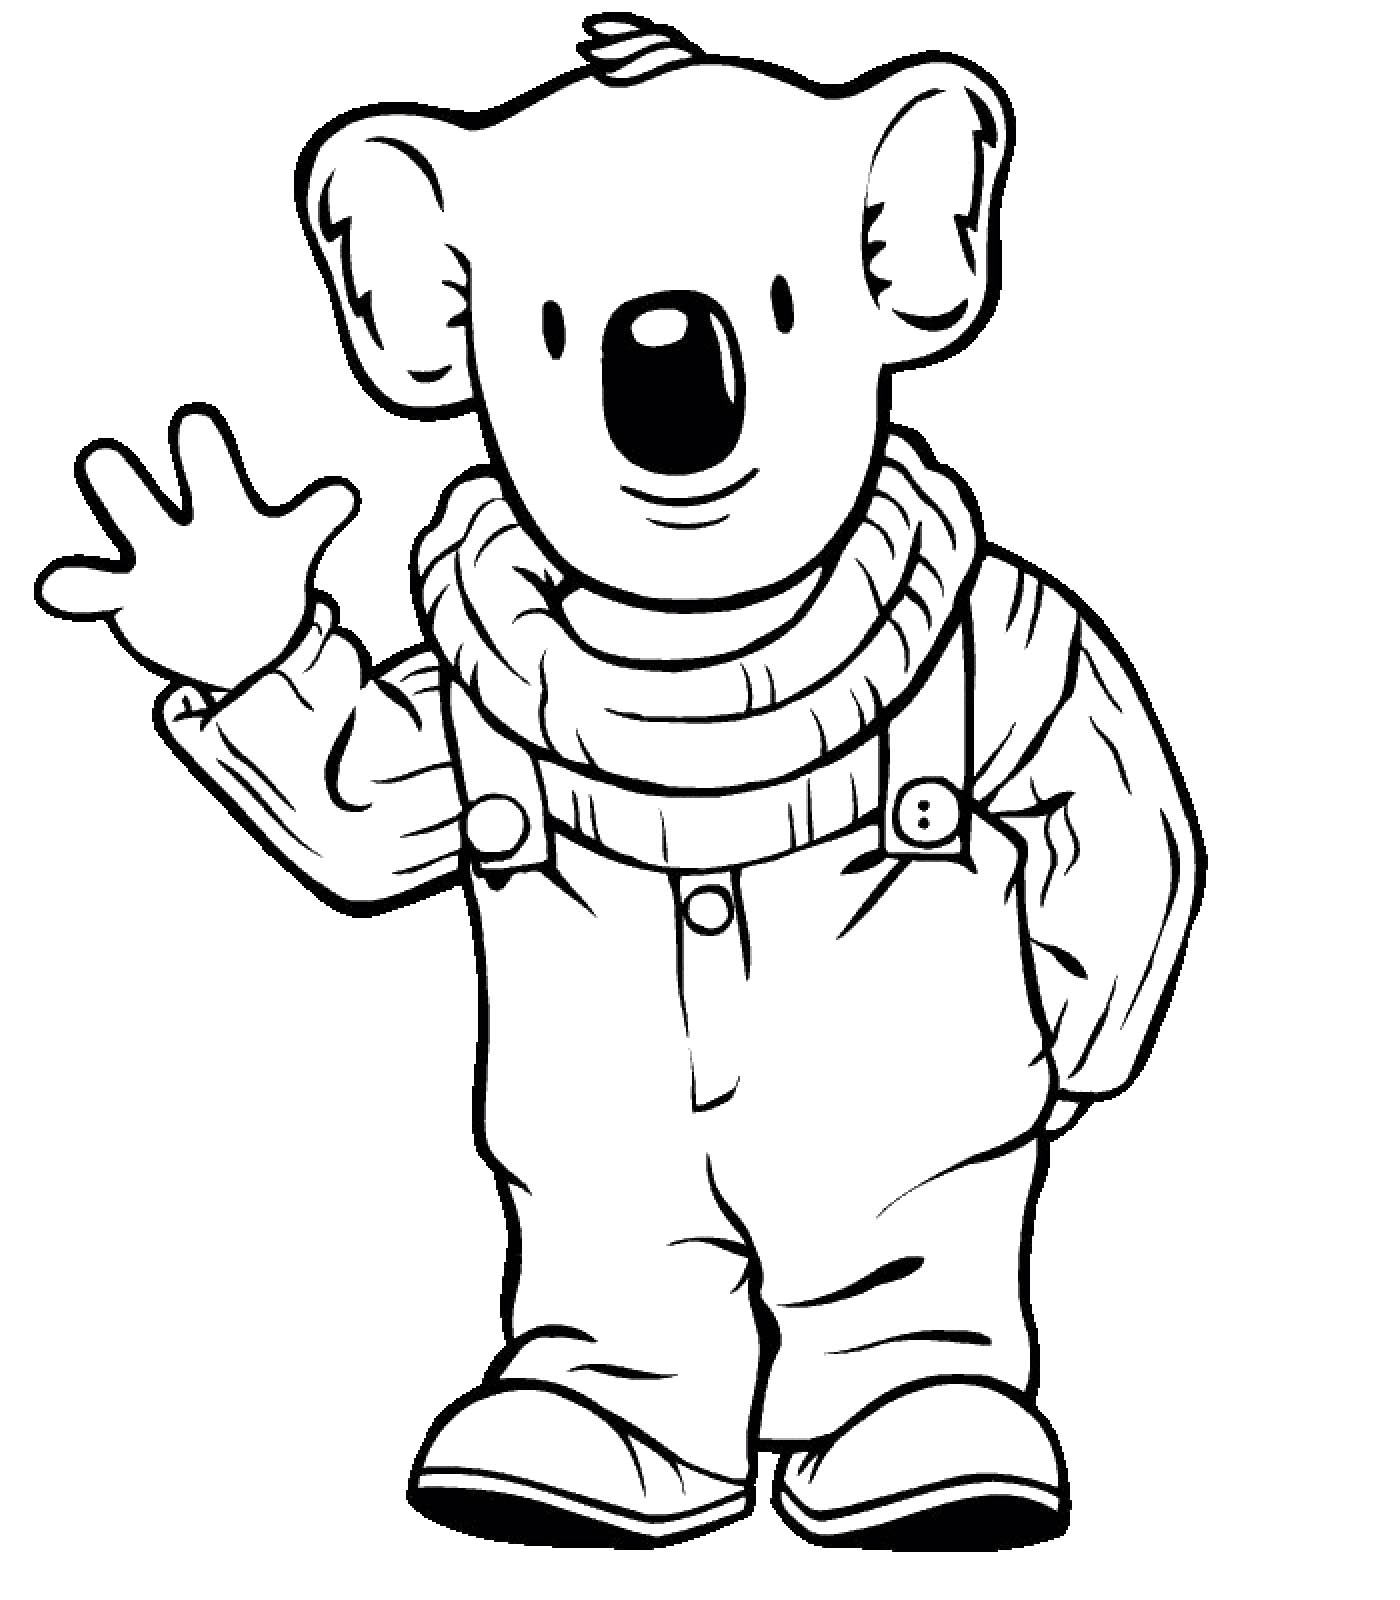 Koala Coloring Pages To Print